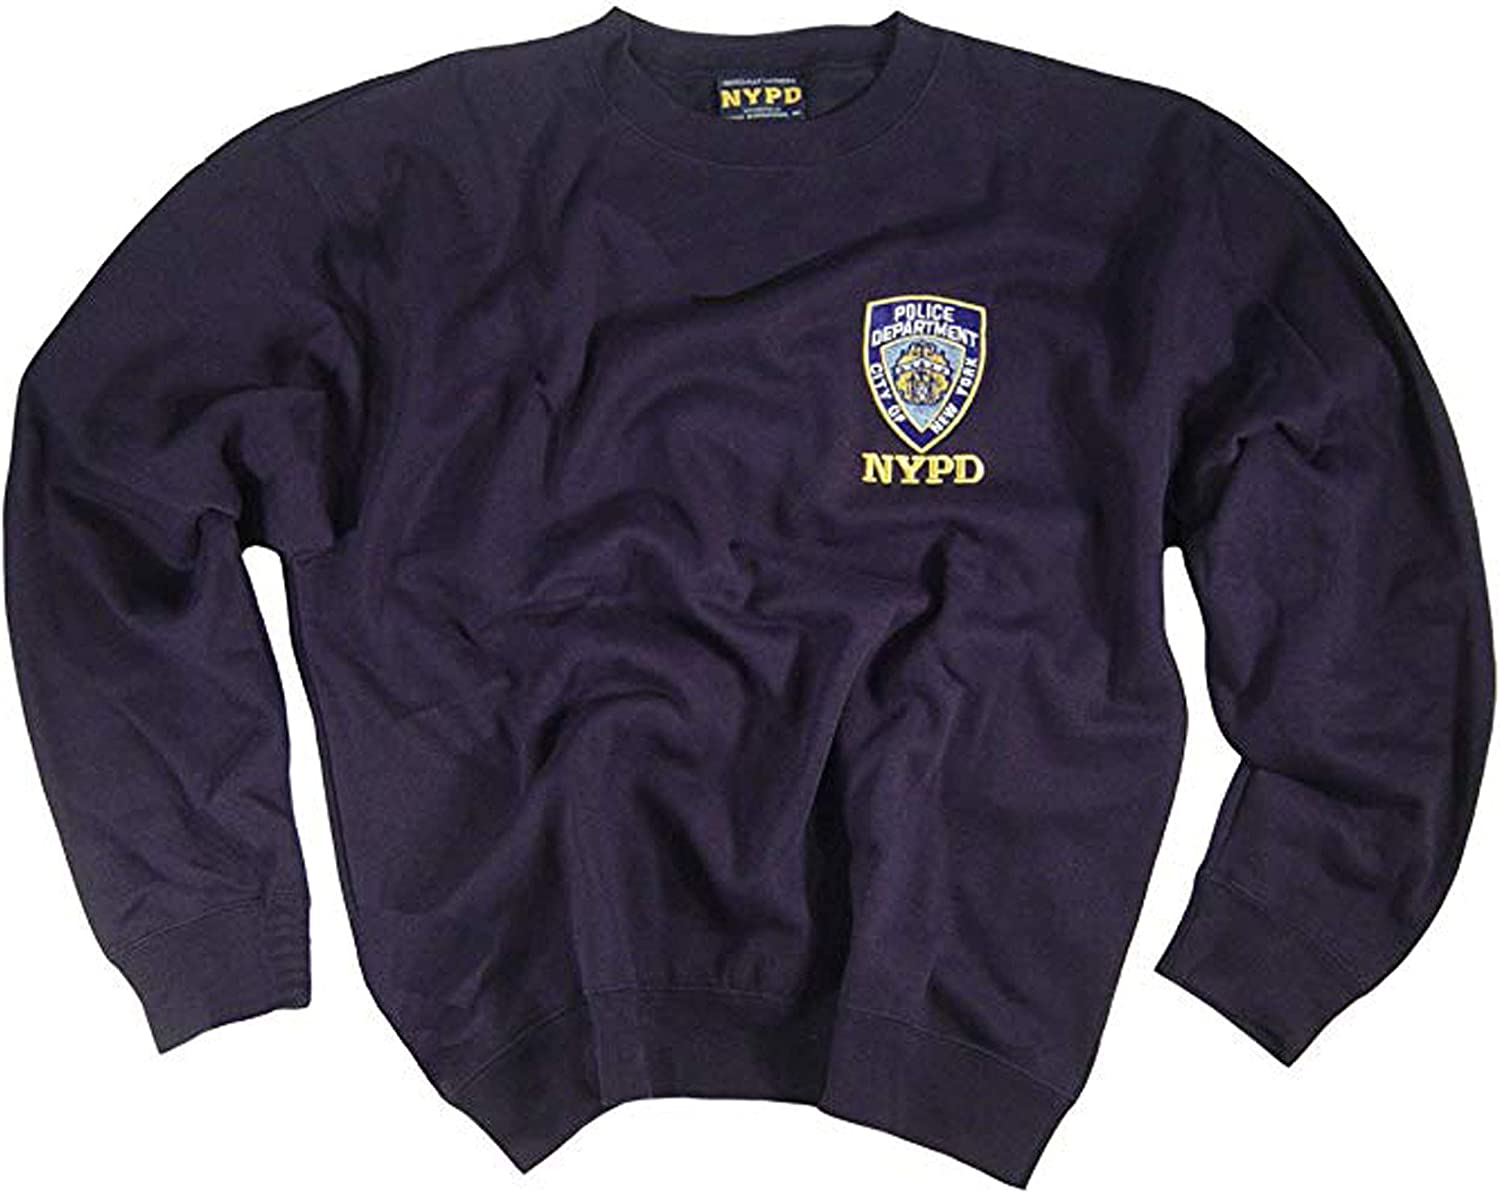 NYPD Sweatshirt Embroidered Patch Logo Uniform Officially Licensed Merchandise